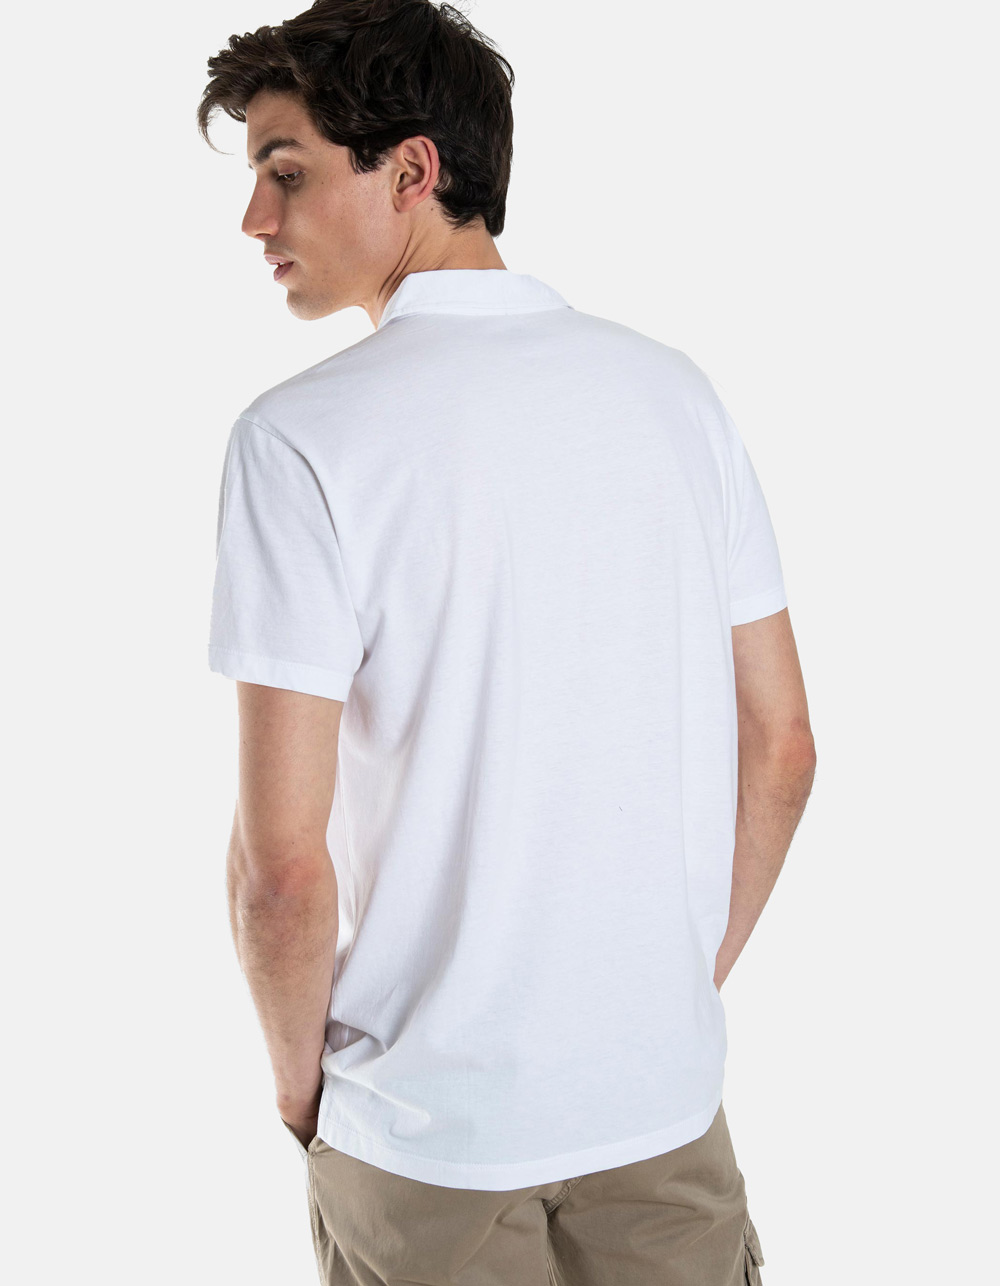 White pocket polo shirt - Backside